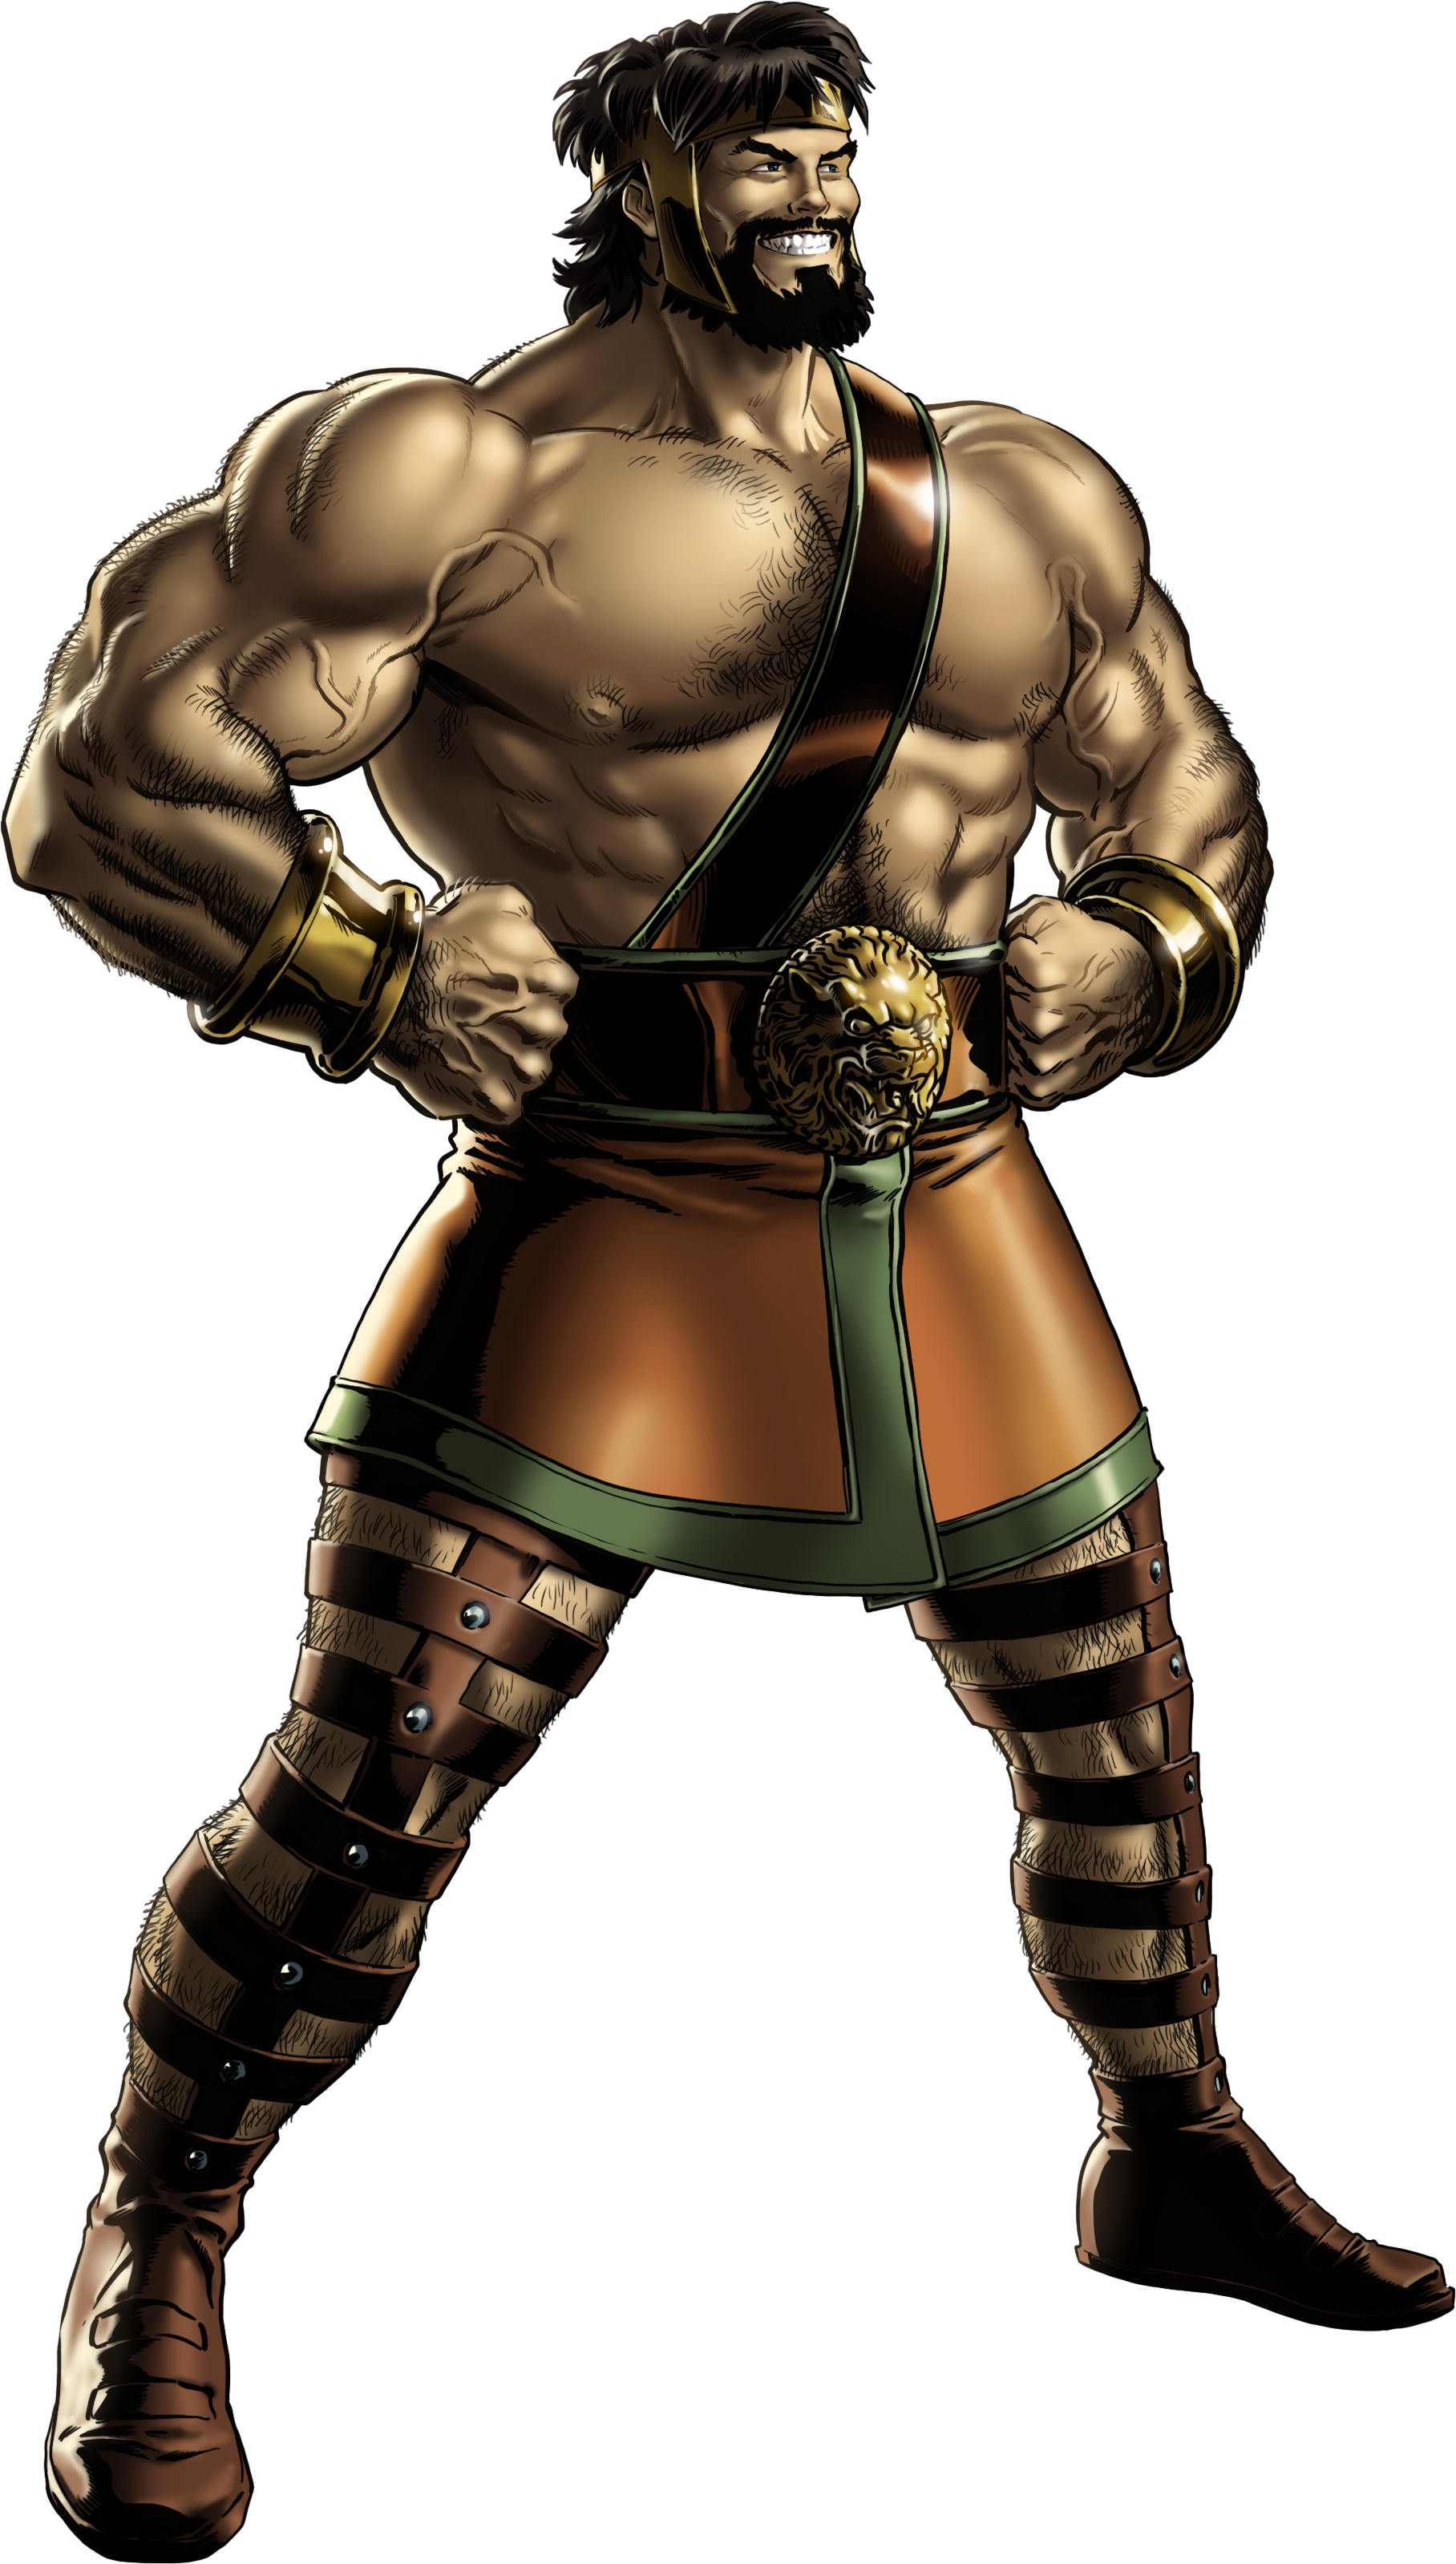 Image - Hercules Portrait Art.png | Marvel: Avengers Alliance Wiki | FANDOM  powered by Wikia - Hercules PNG